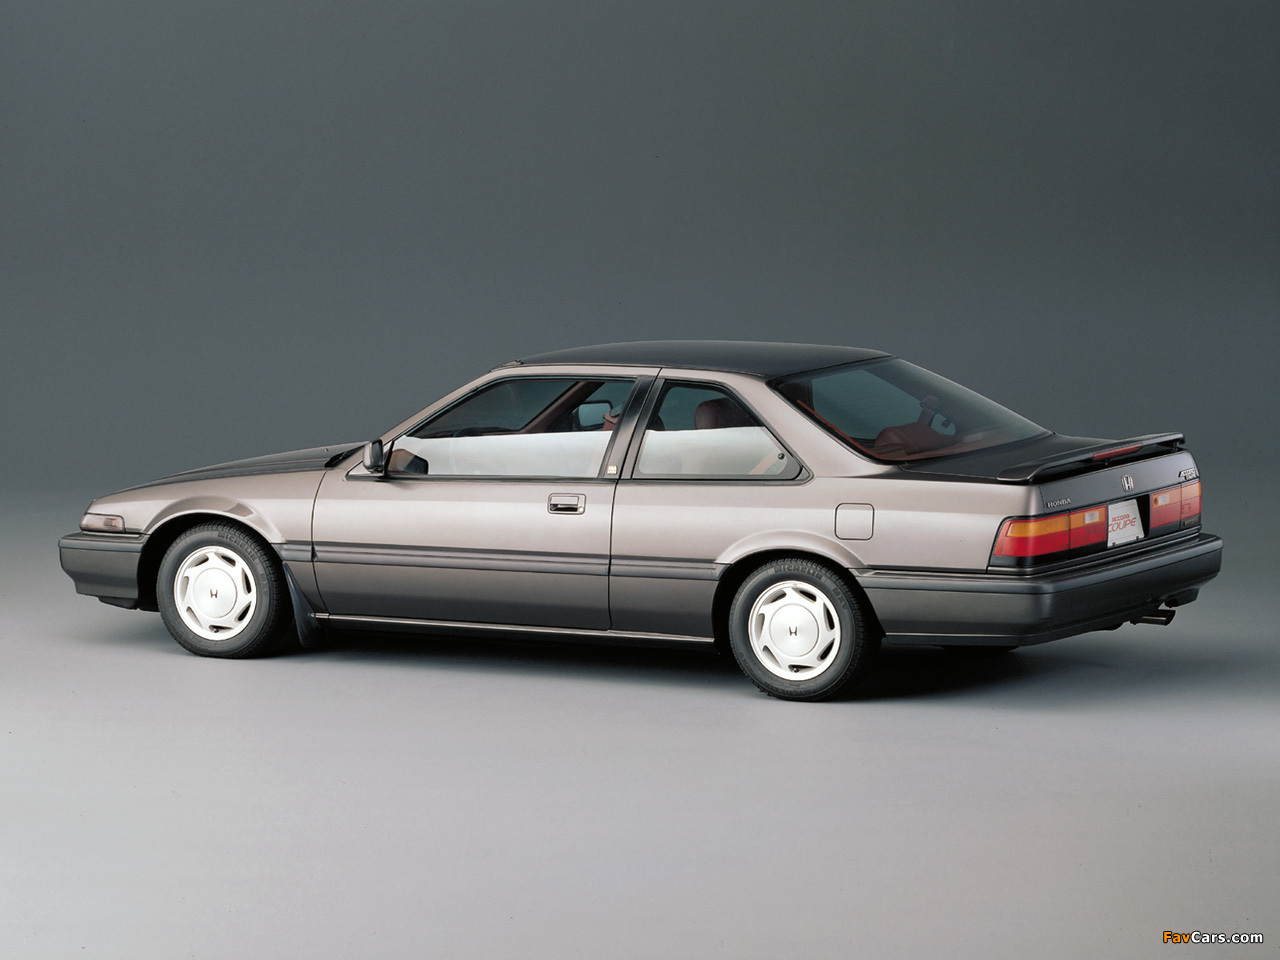 The Beautiful 1988 Accord Coupe